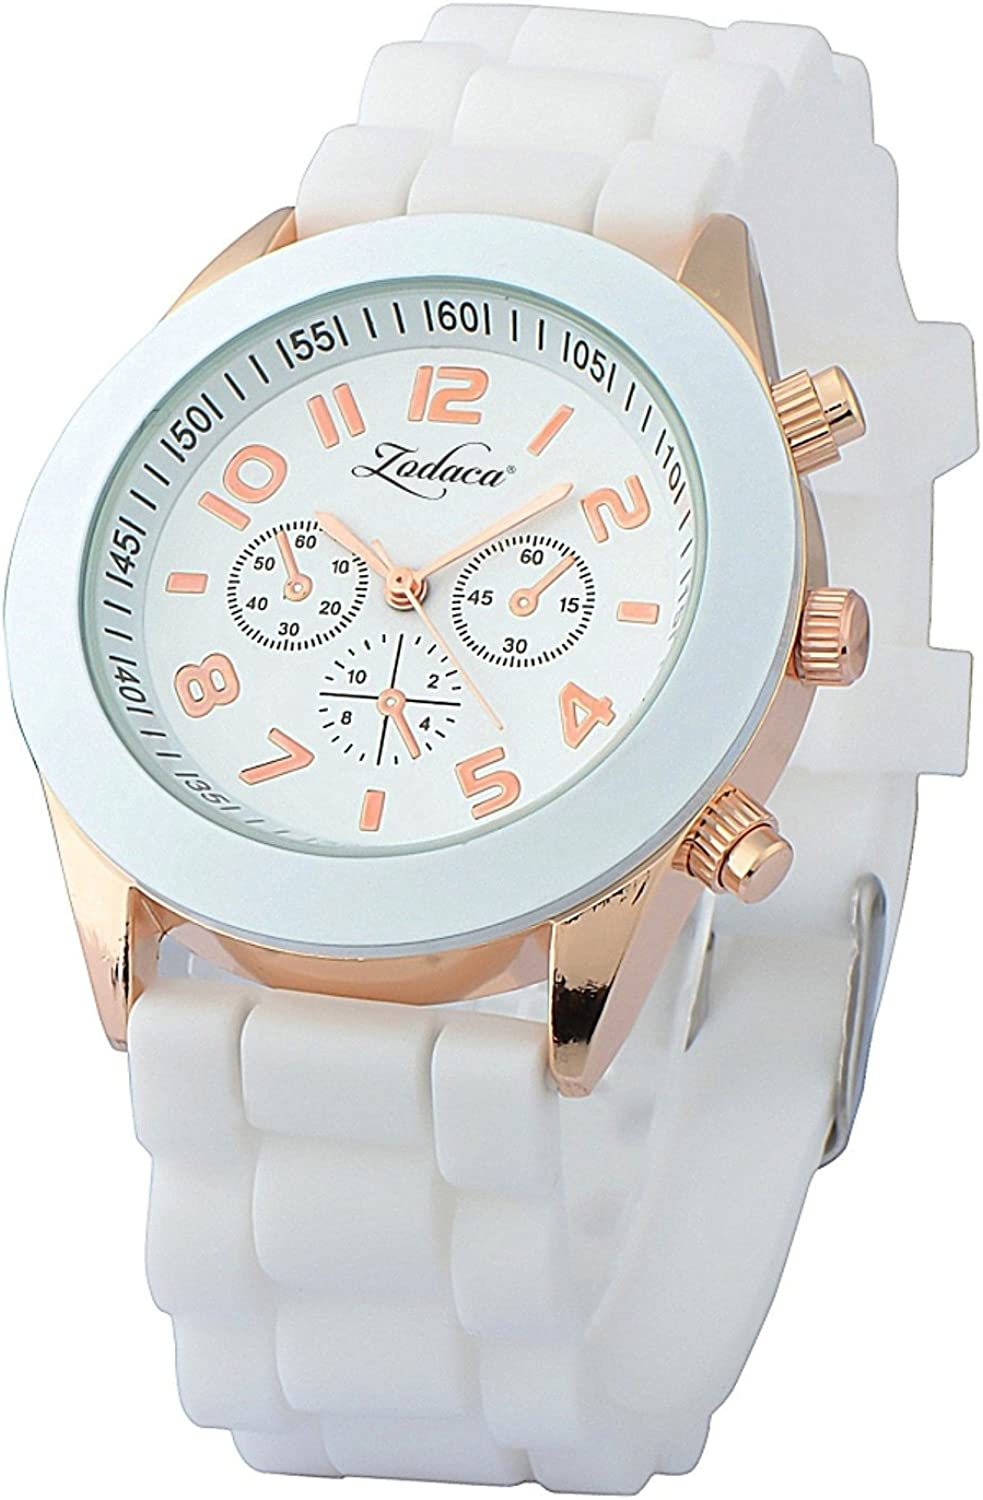 INSTEN Unisex Fashion Analog Quartz Silicone Jelly Sports Wrist Watch, White